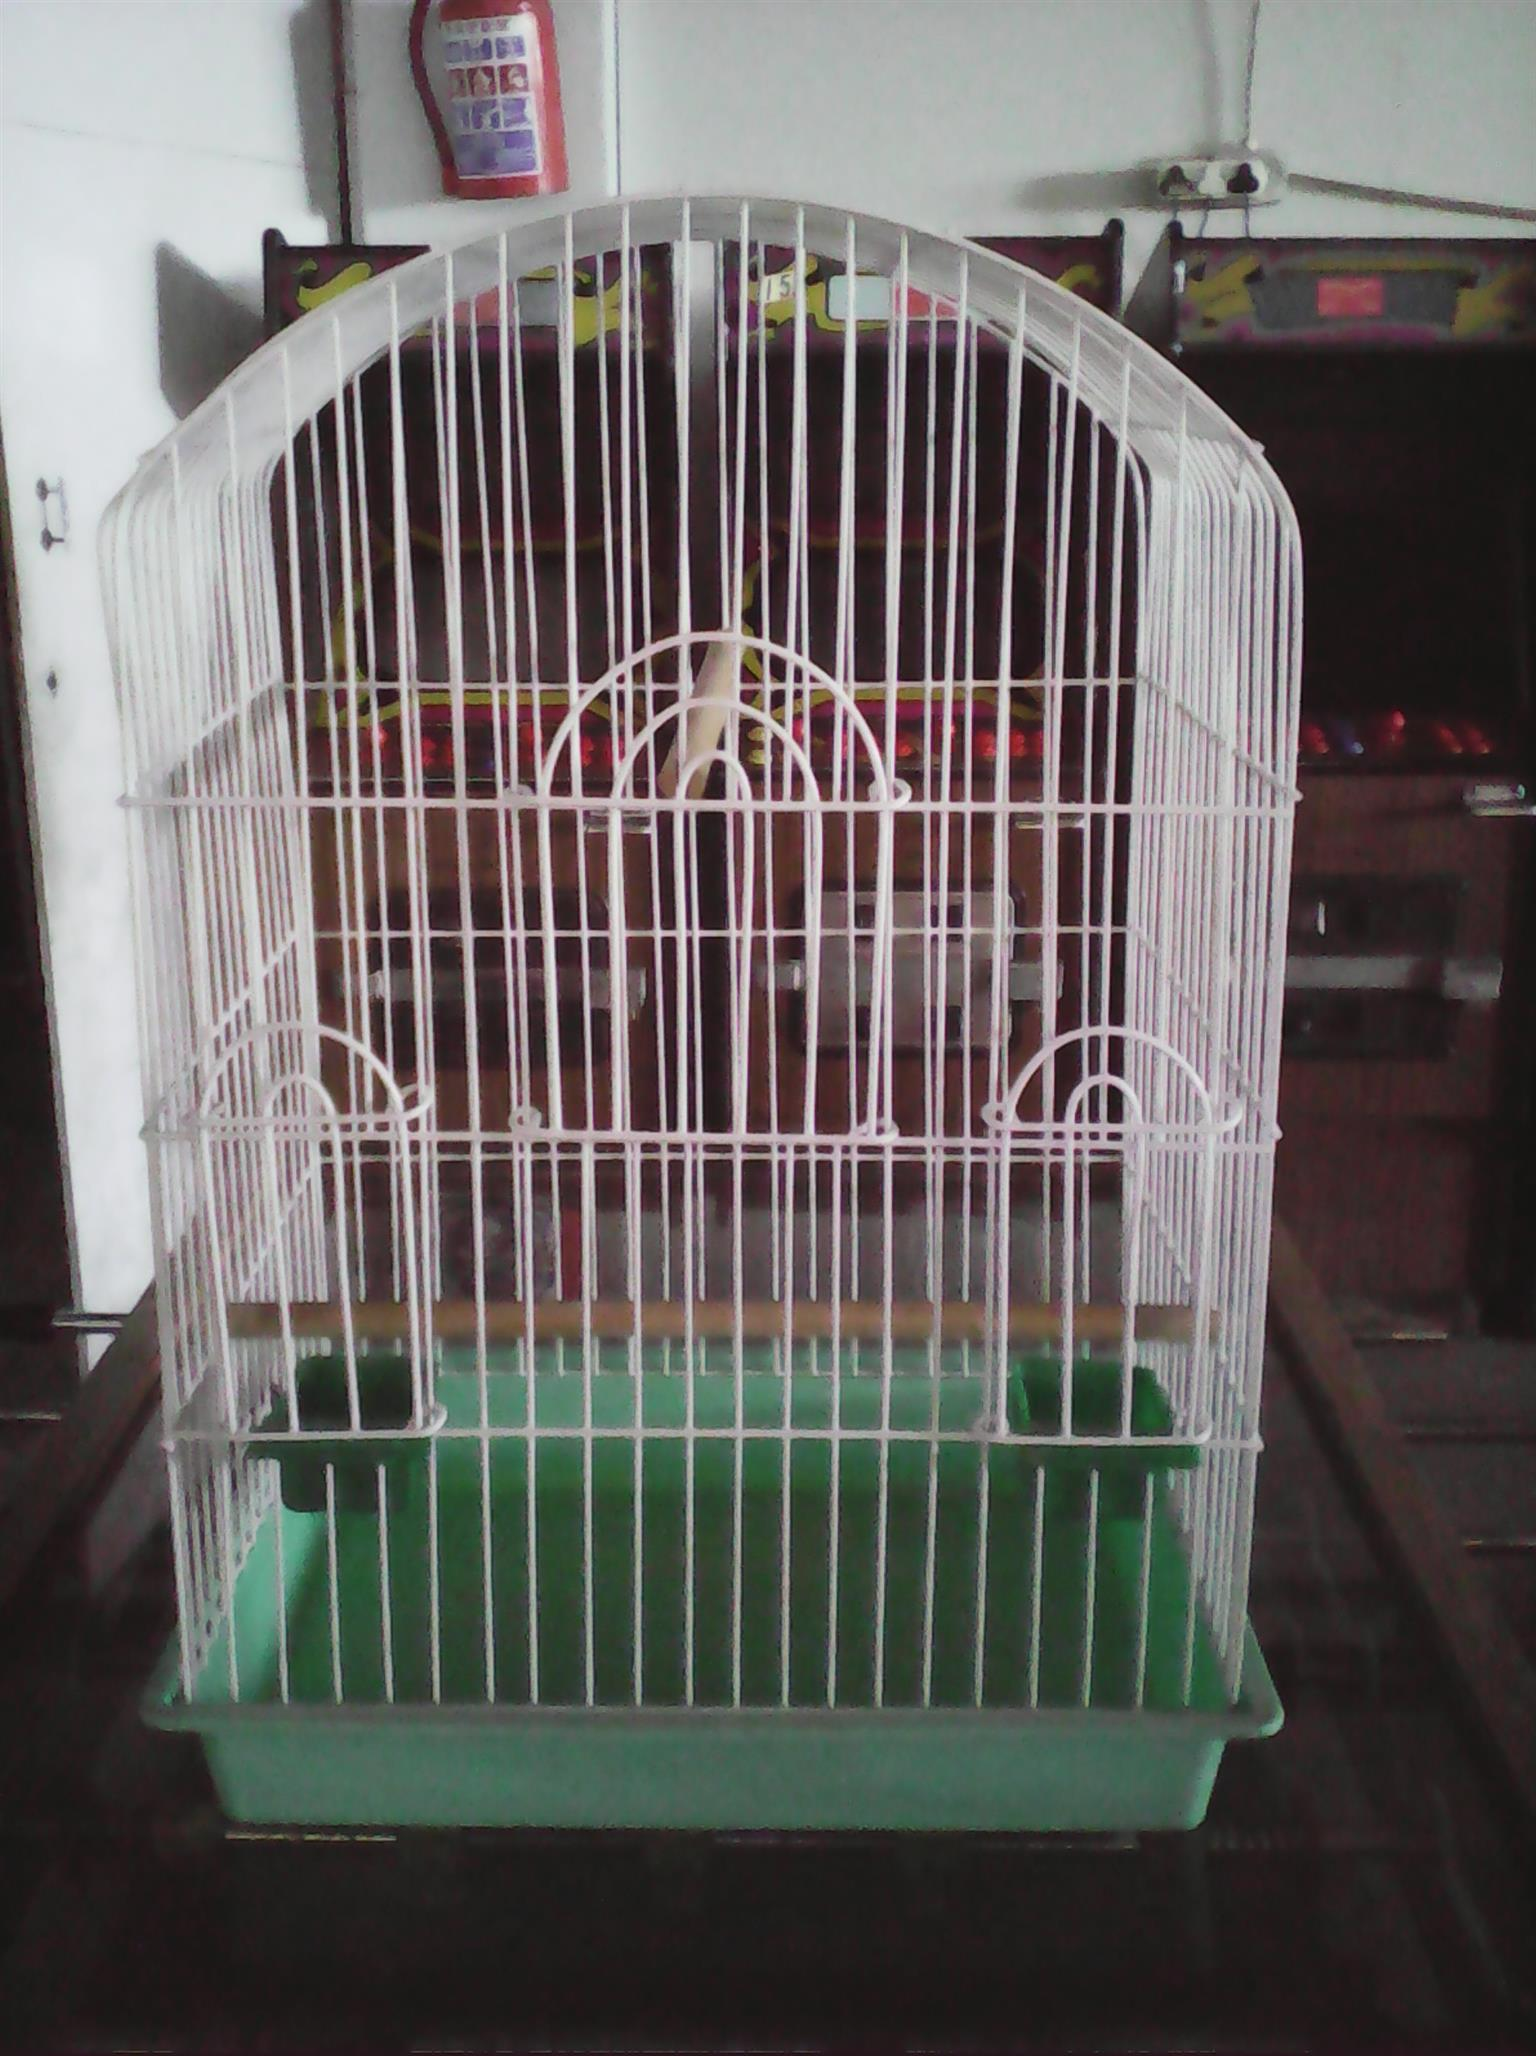 Parrot Cage And Other Cages